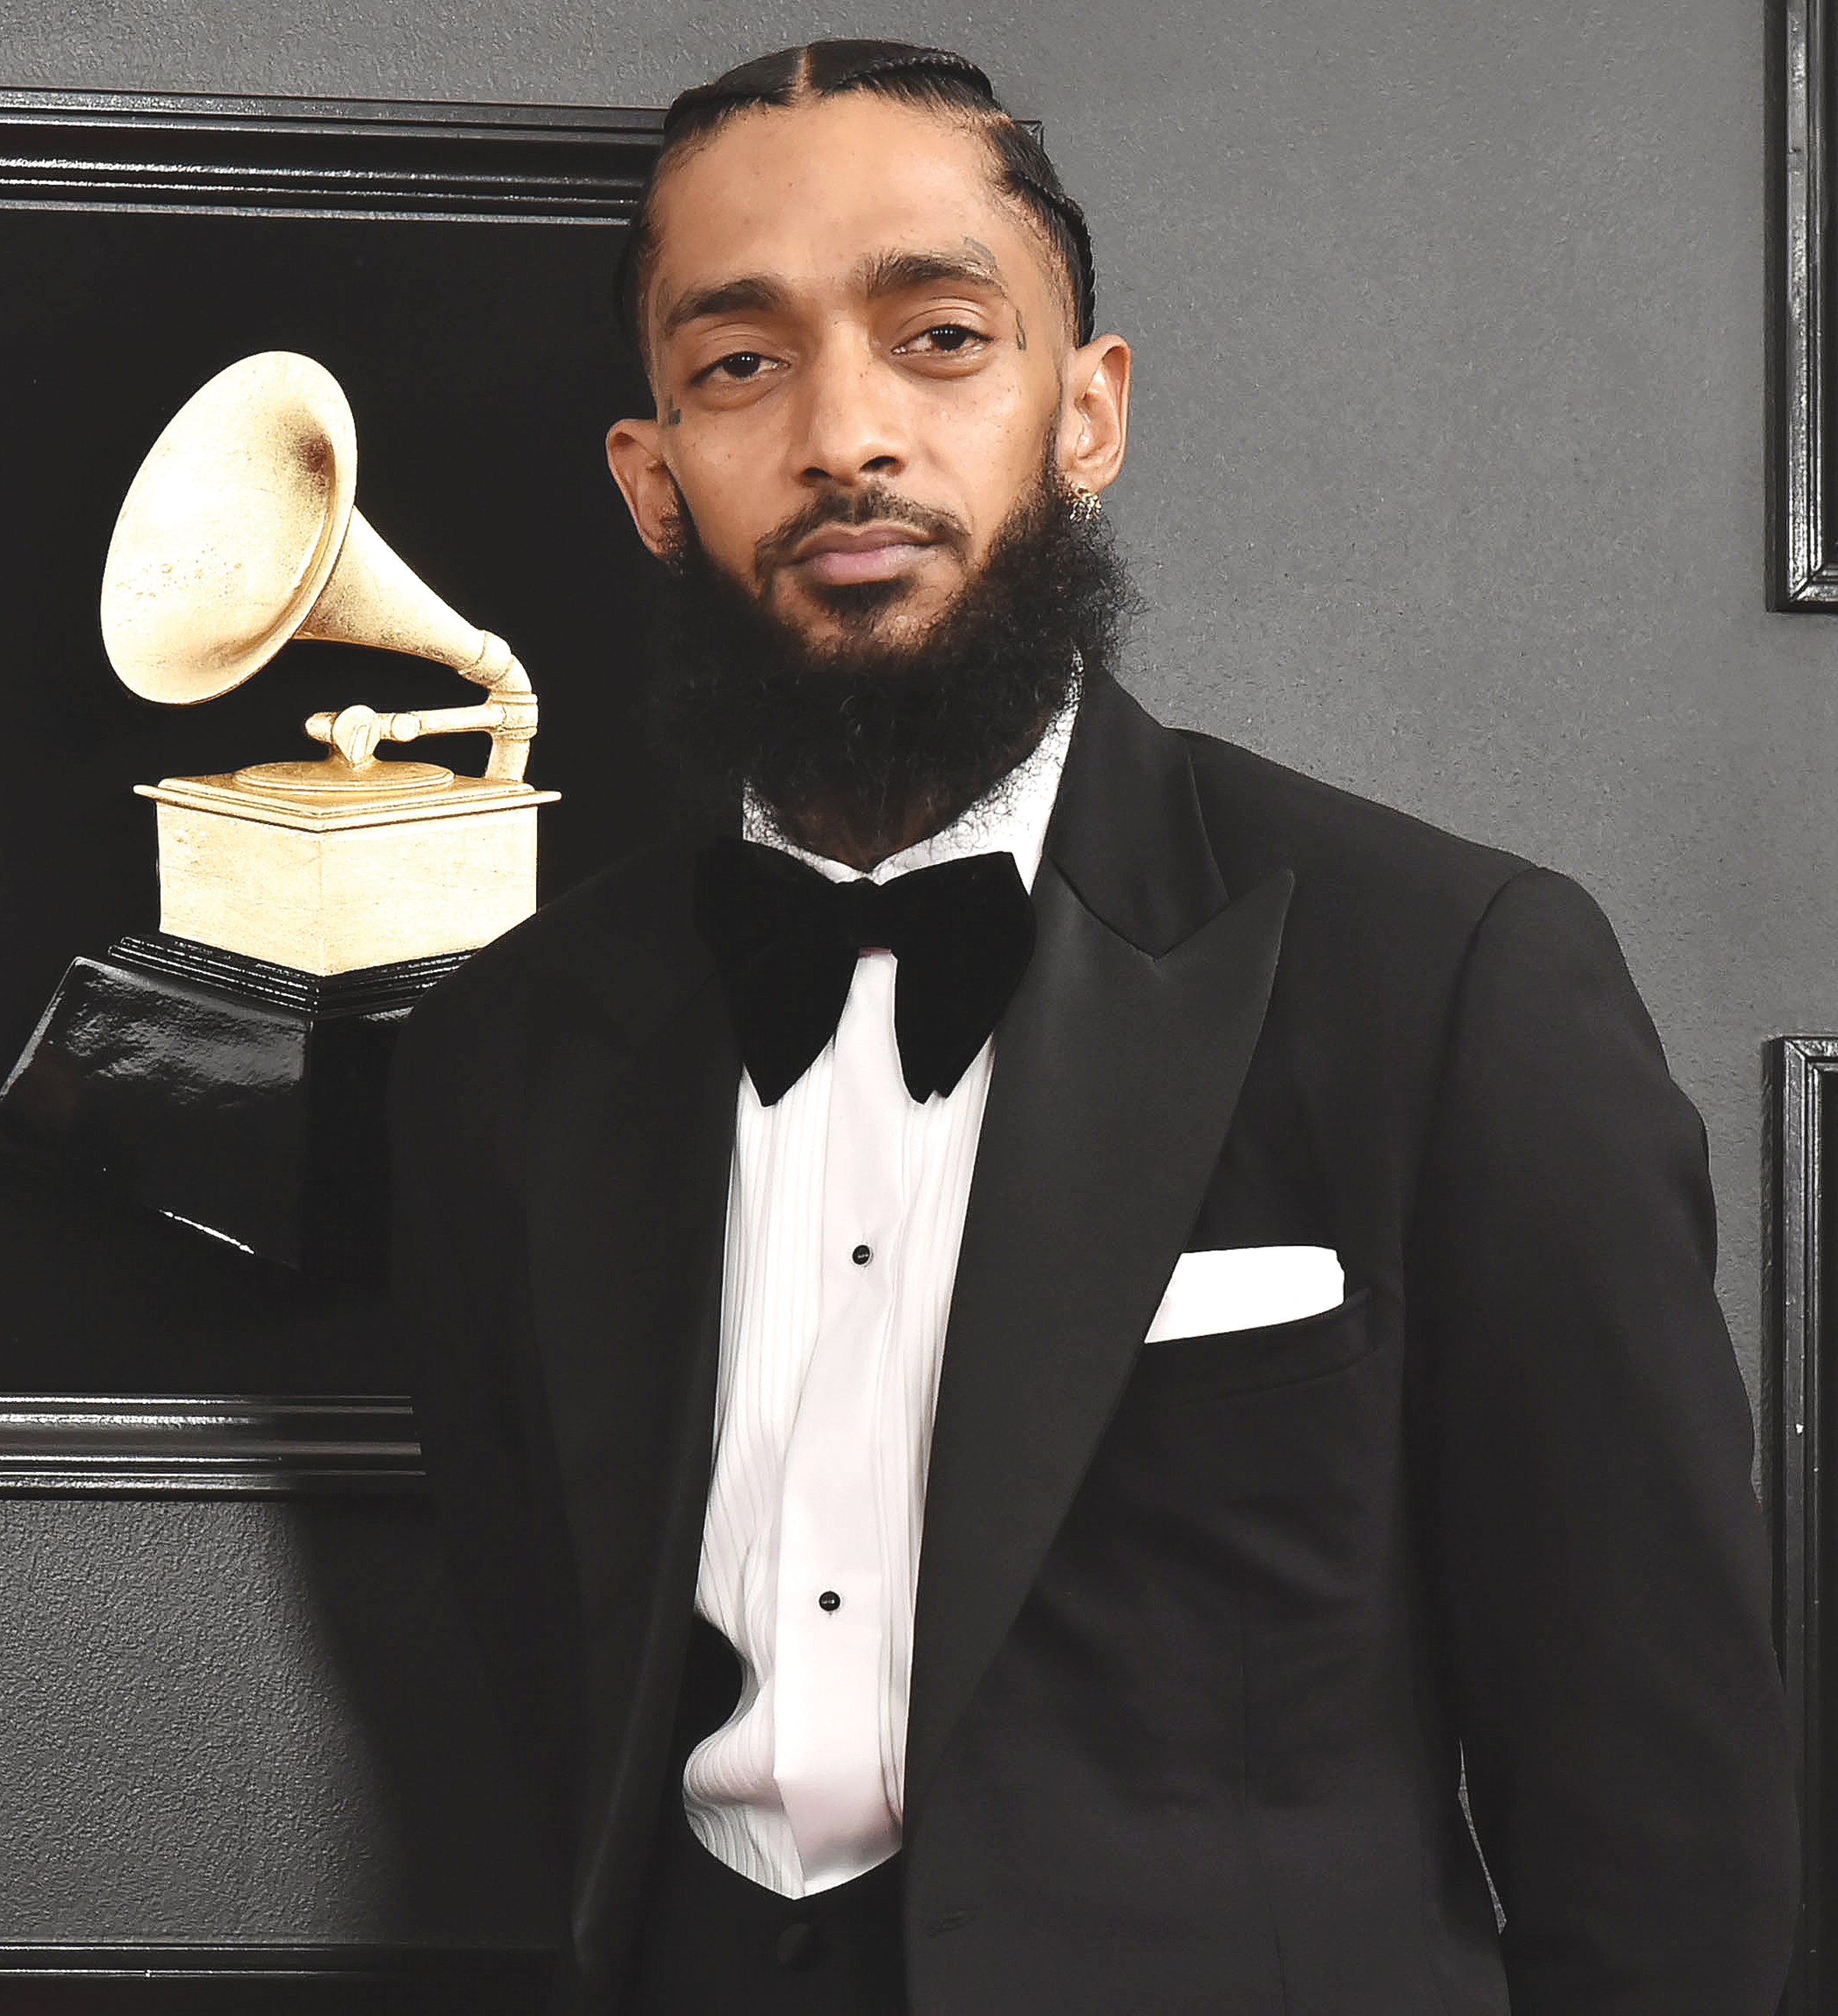 Nipsey Hussle at the 2019 Grammy Awards this past February. (David Crotty/Patrick McMullan via Getty Images)